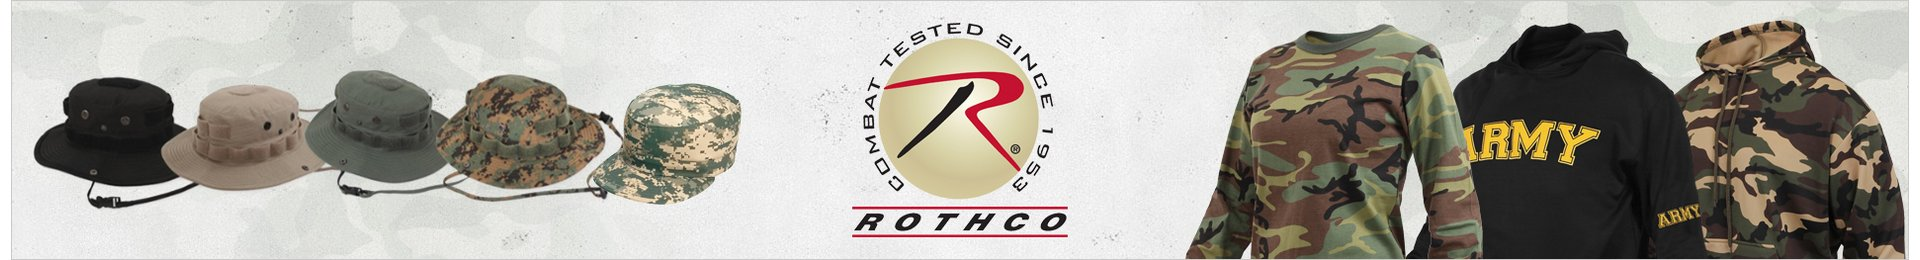 Rothco Clothing